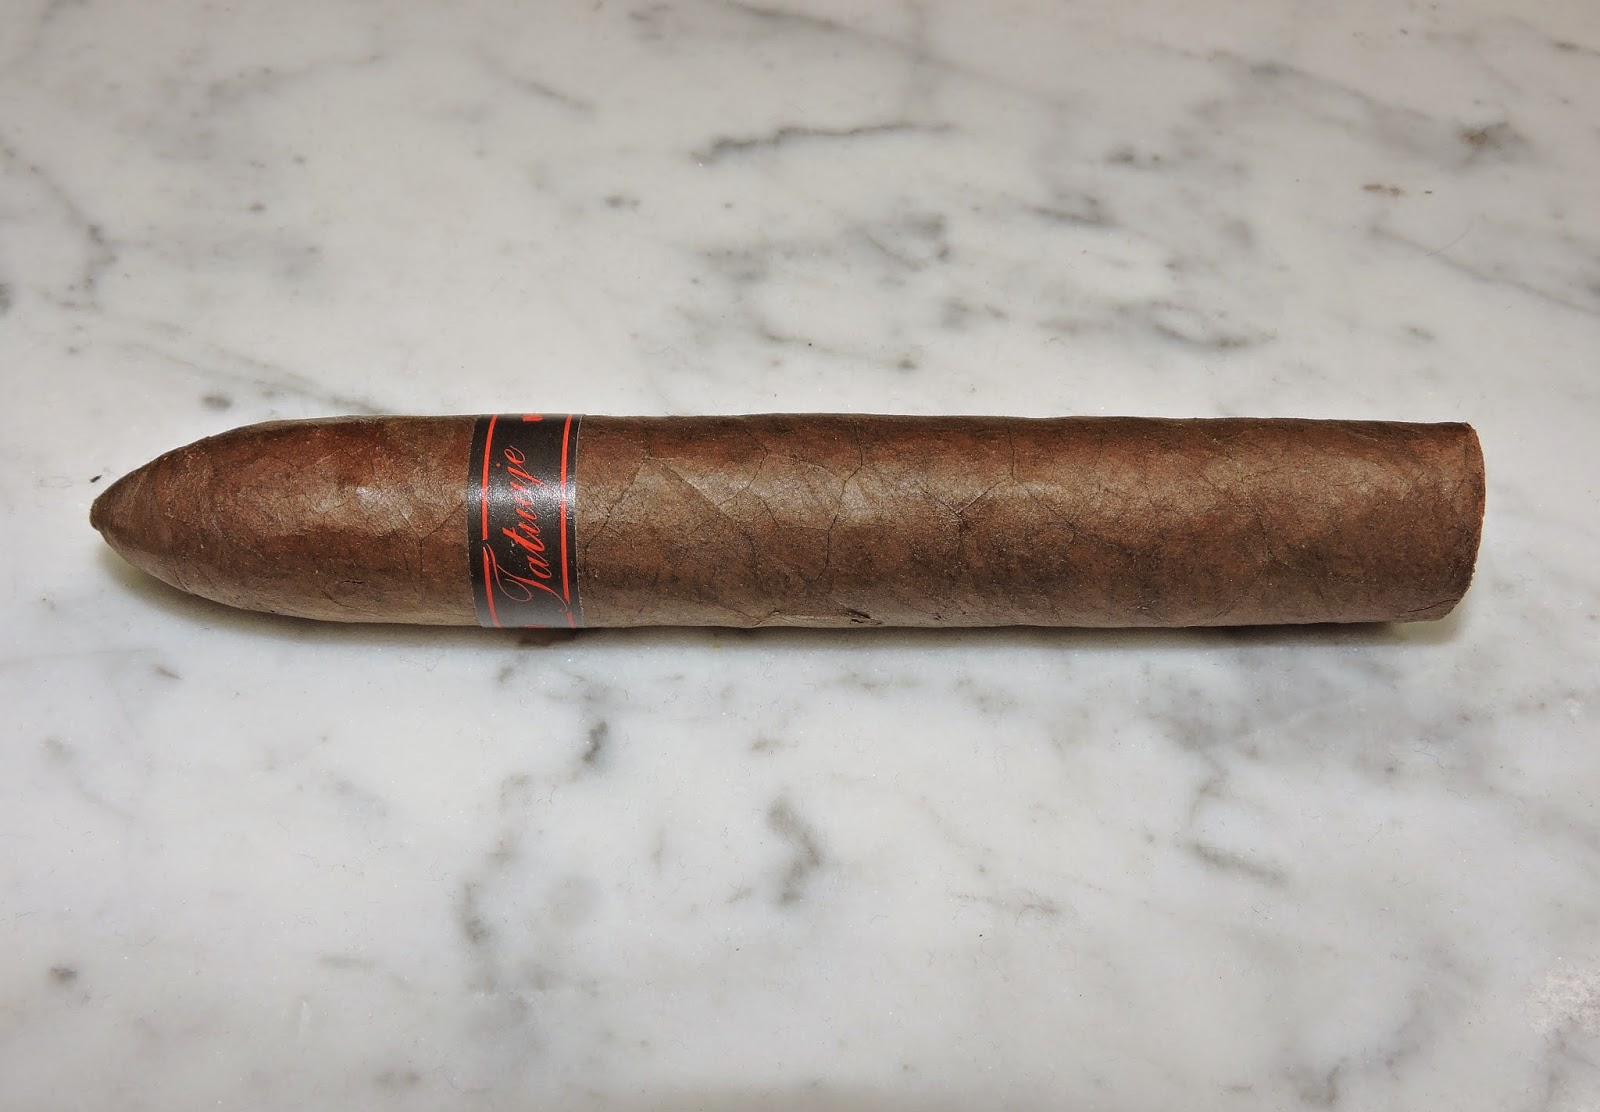 Cigar Review: Tatuaje Drac (Part of the Pudgy Monsters Series)